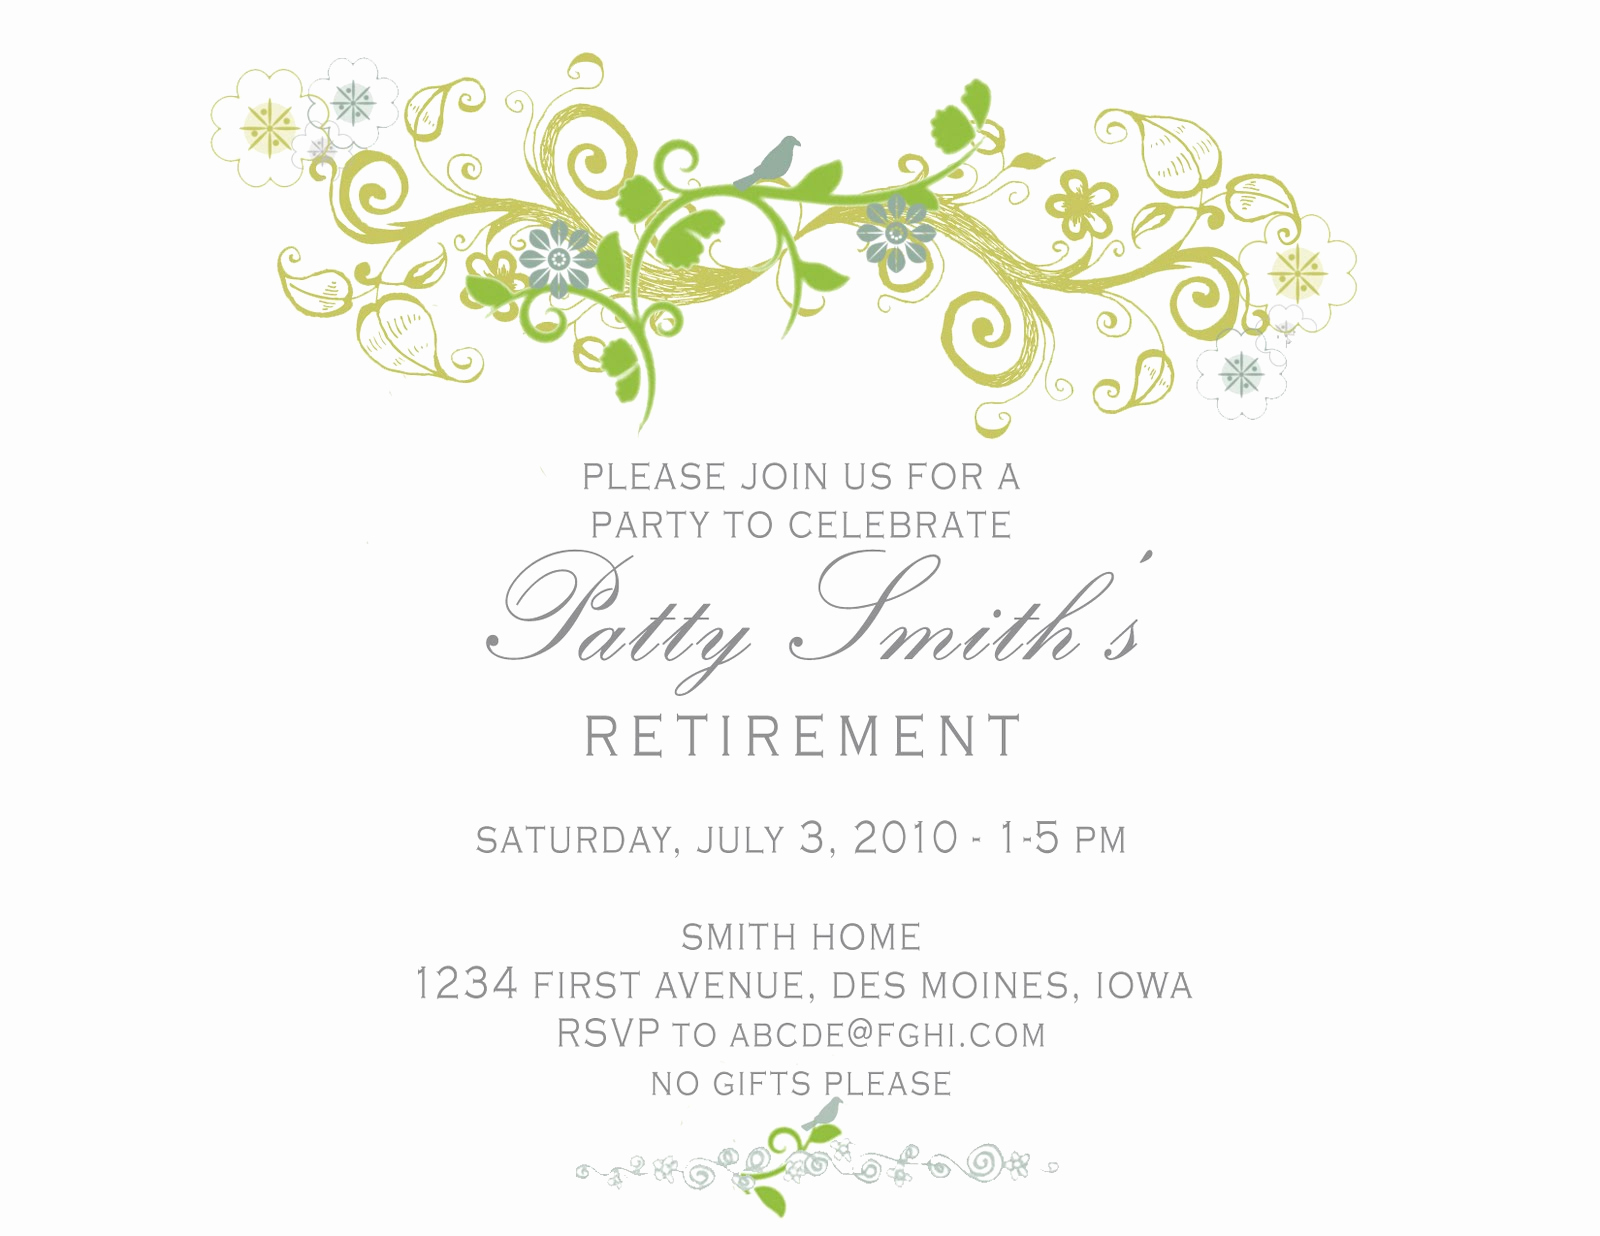 Retirement Party Invitation Template Free Elegant Idesign A Retirement Party Invitation